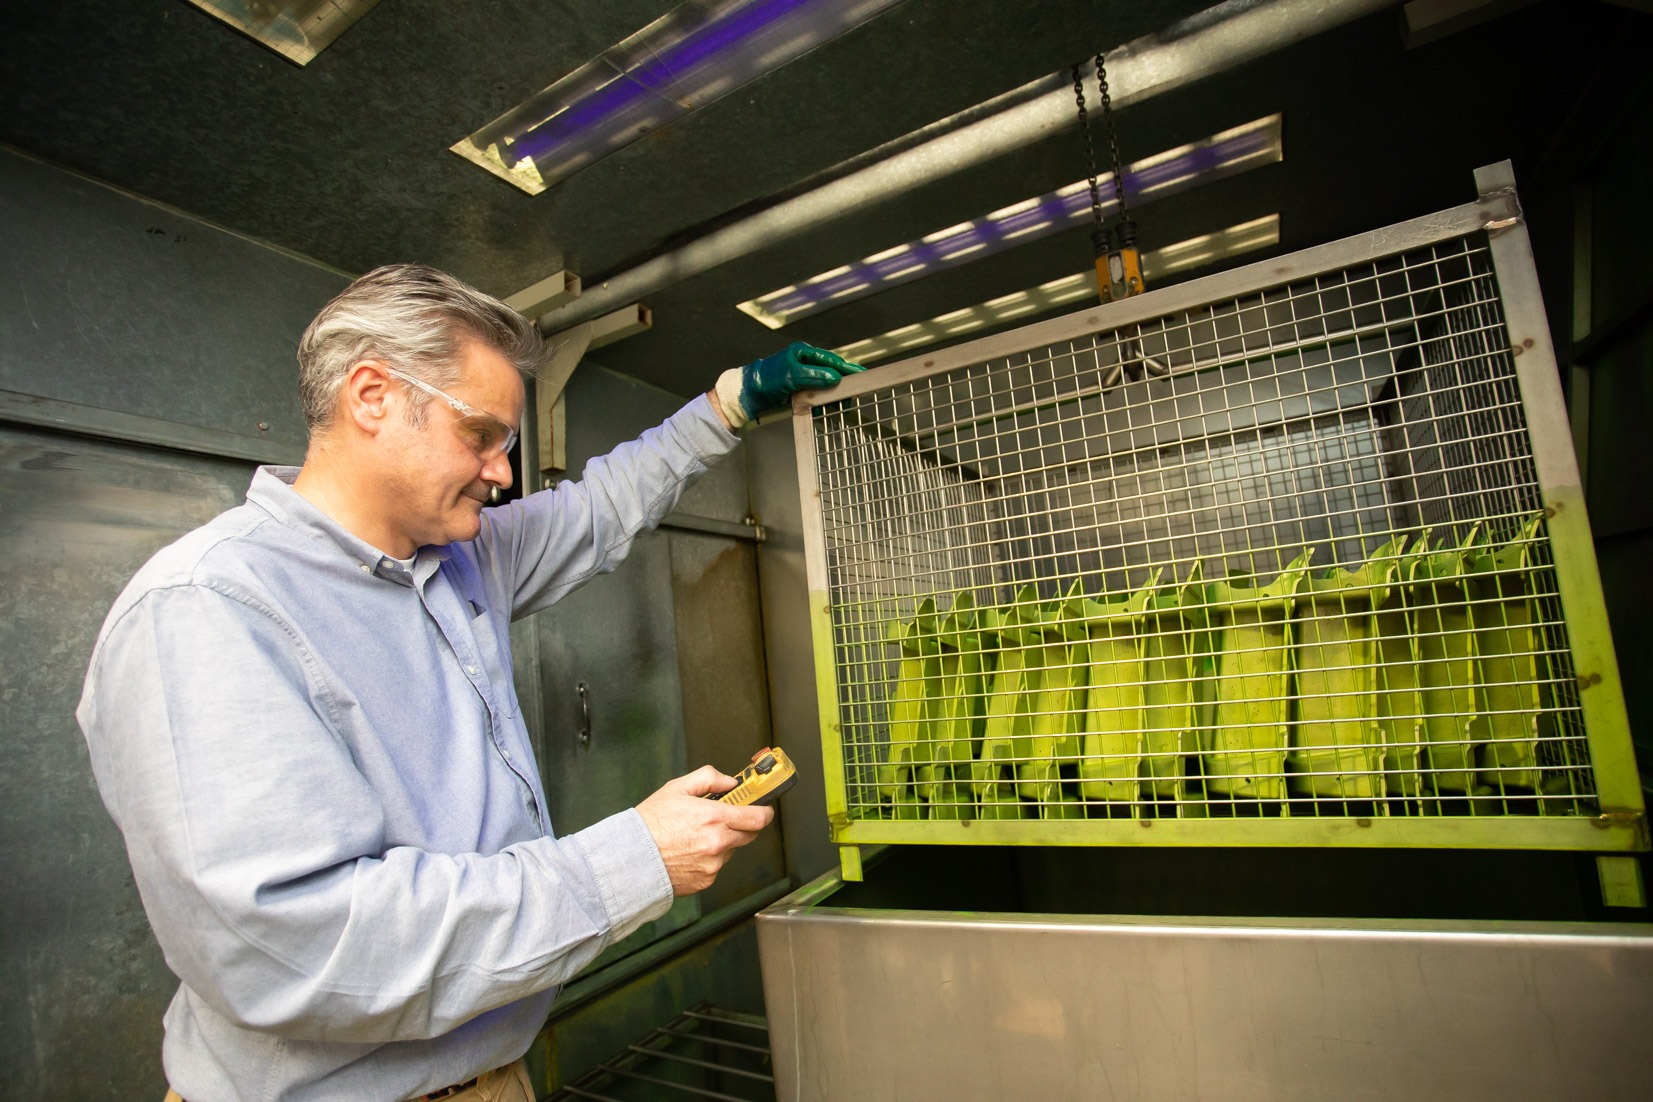 Alucast casts the dye with new £200,000 investment in testing capability Alucast